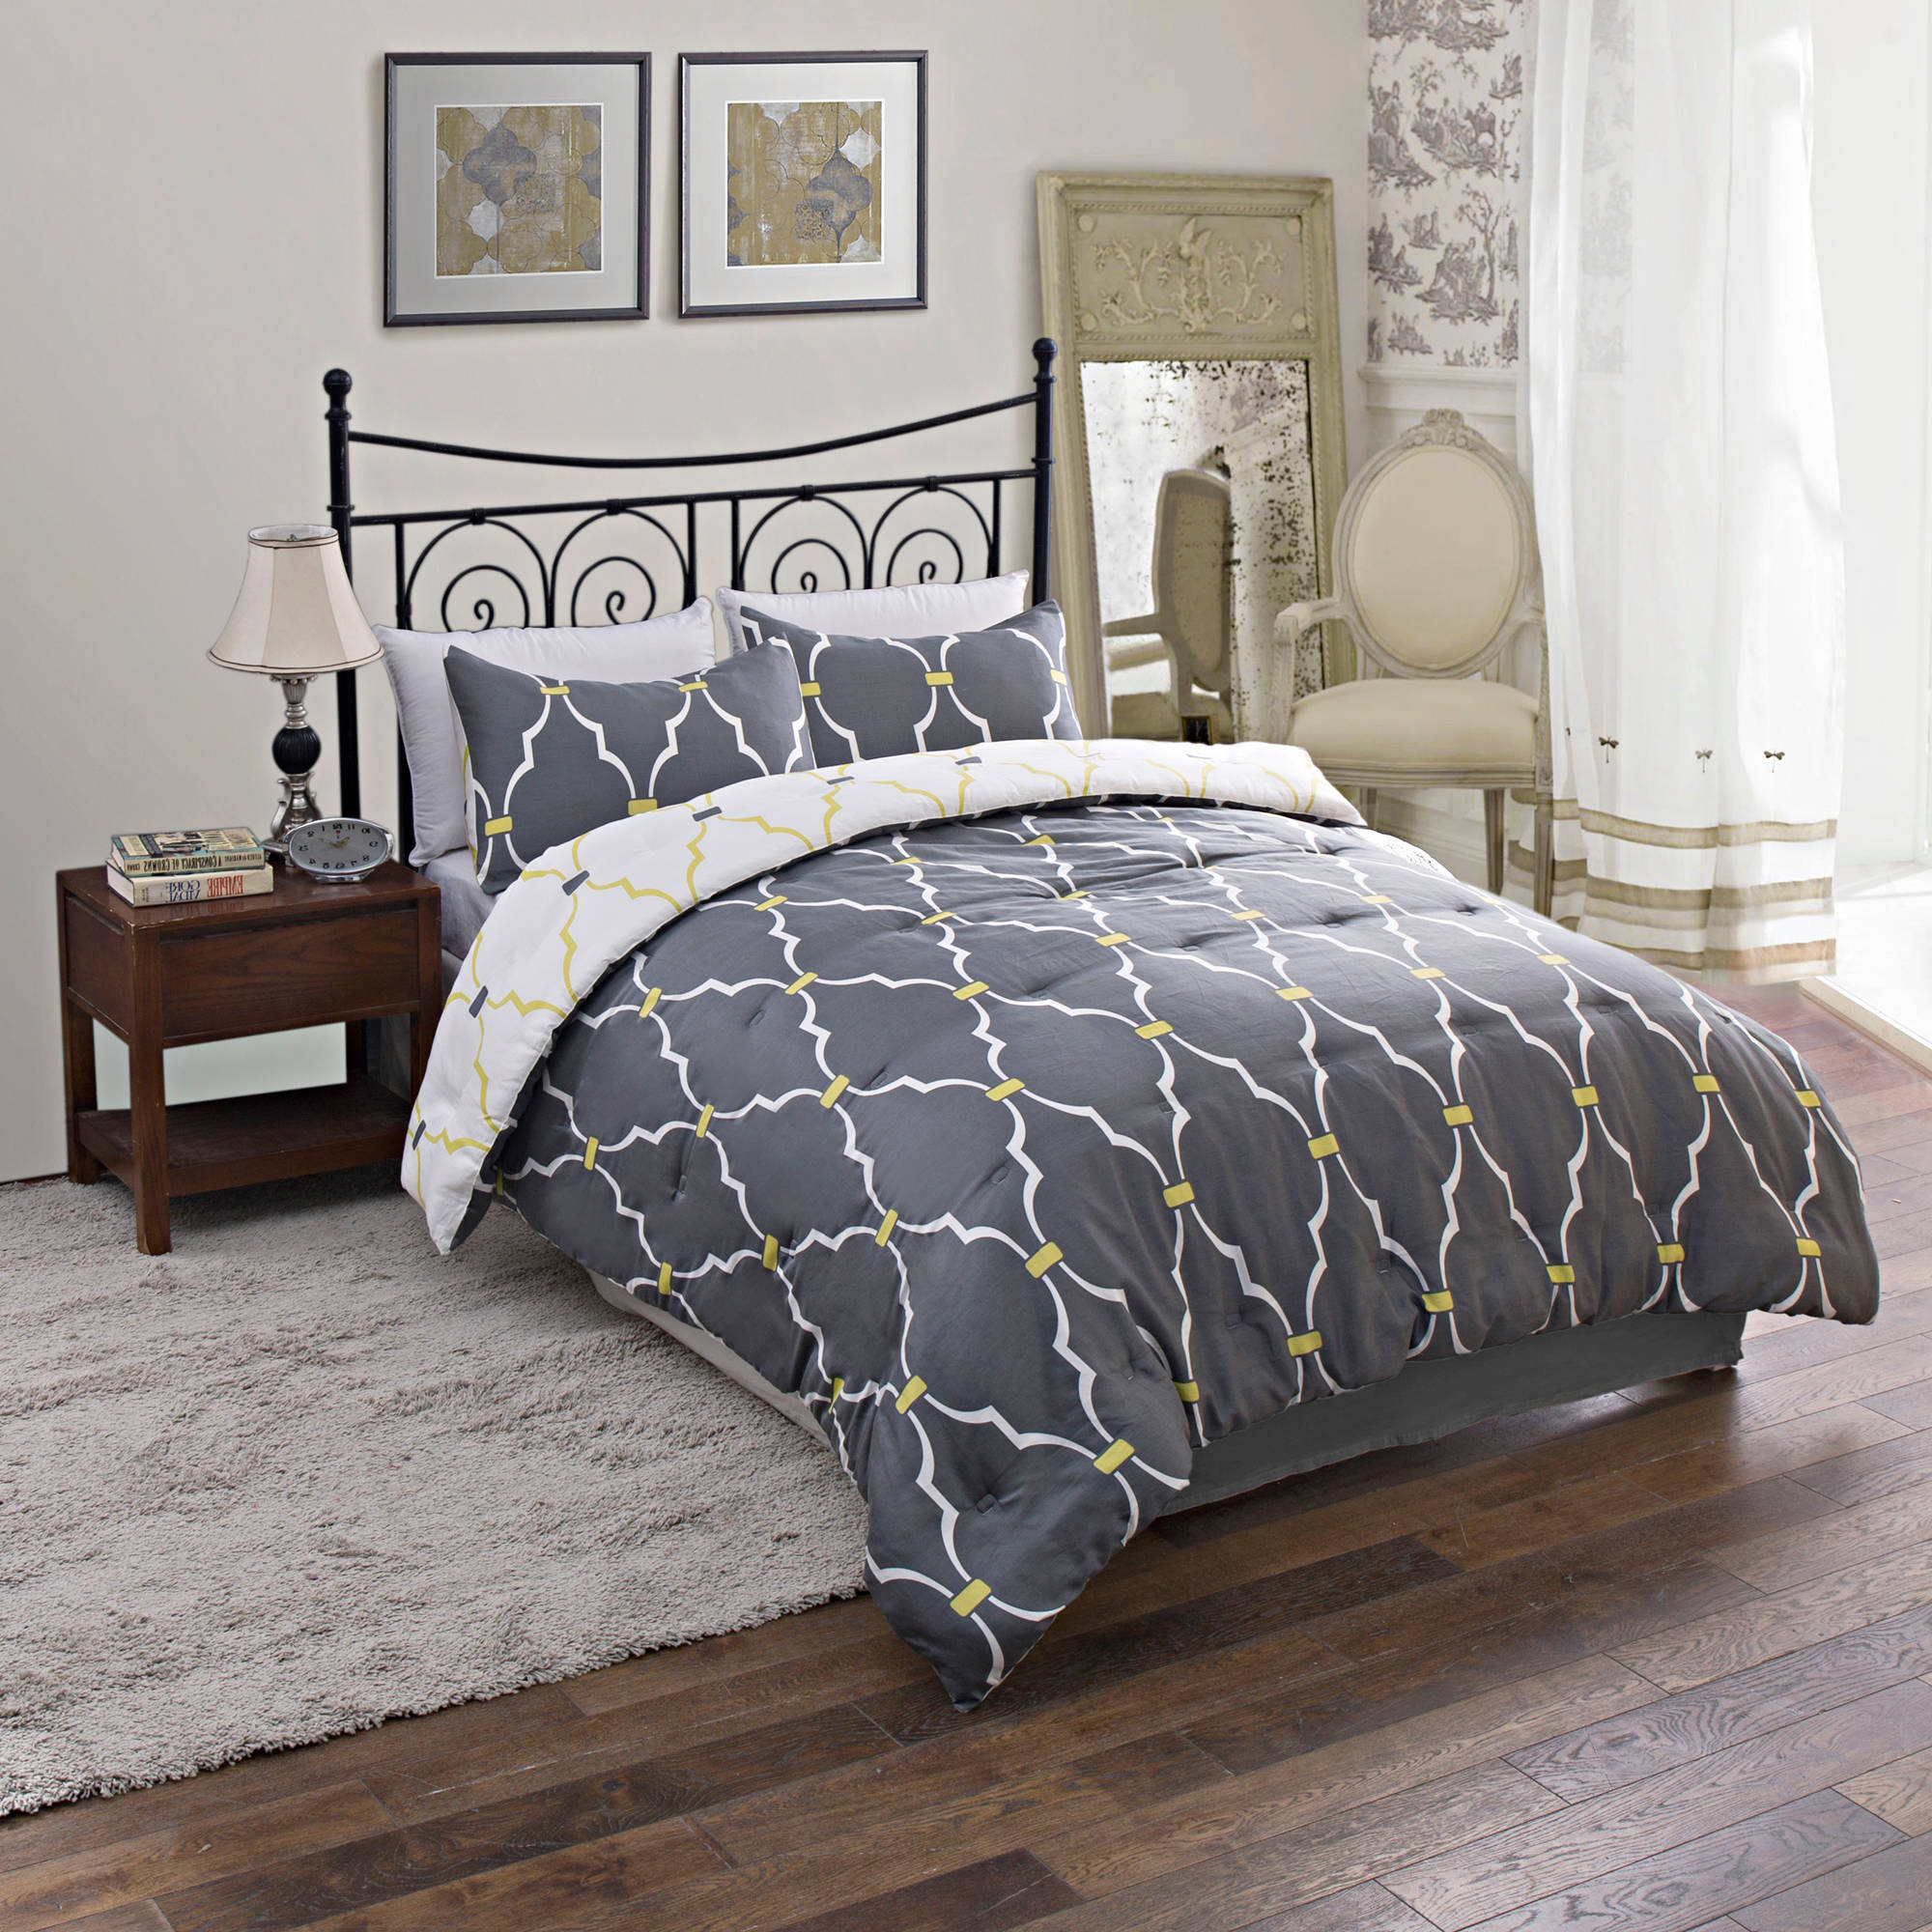 Trellis Reversible Bedding Comforter Set